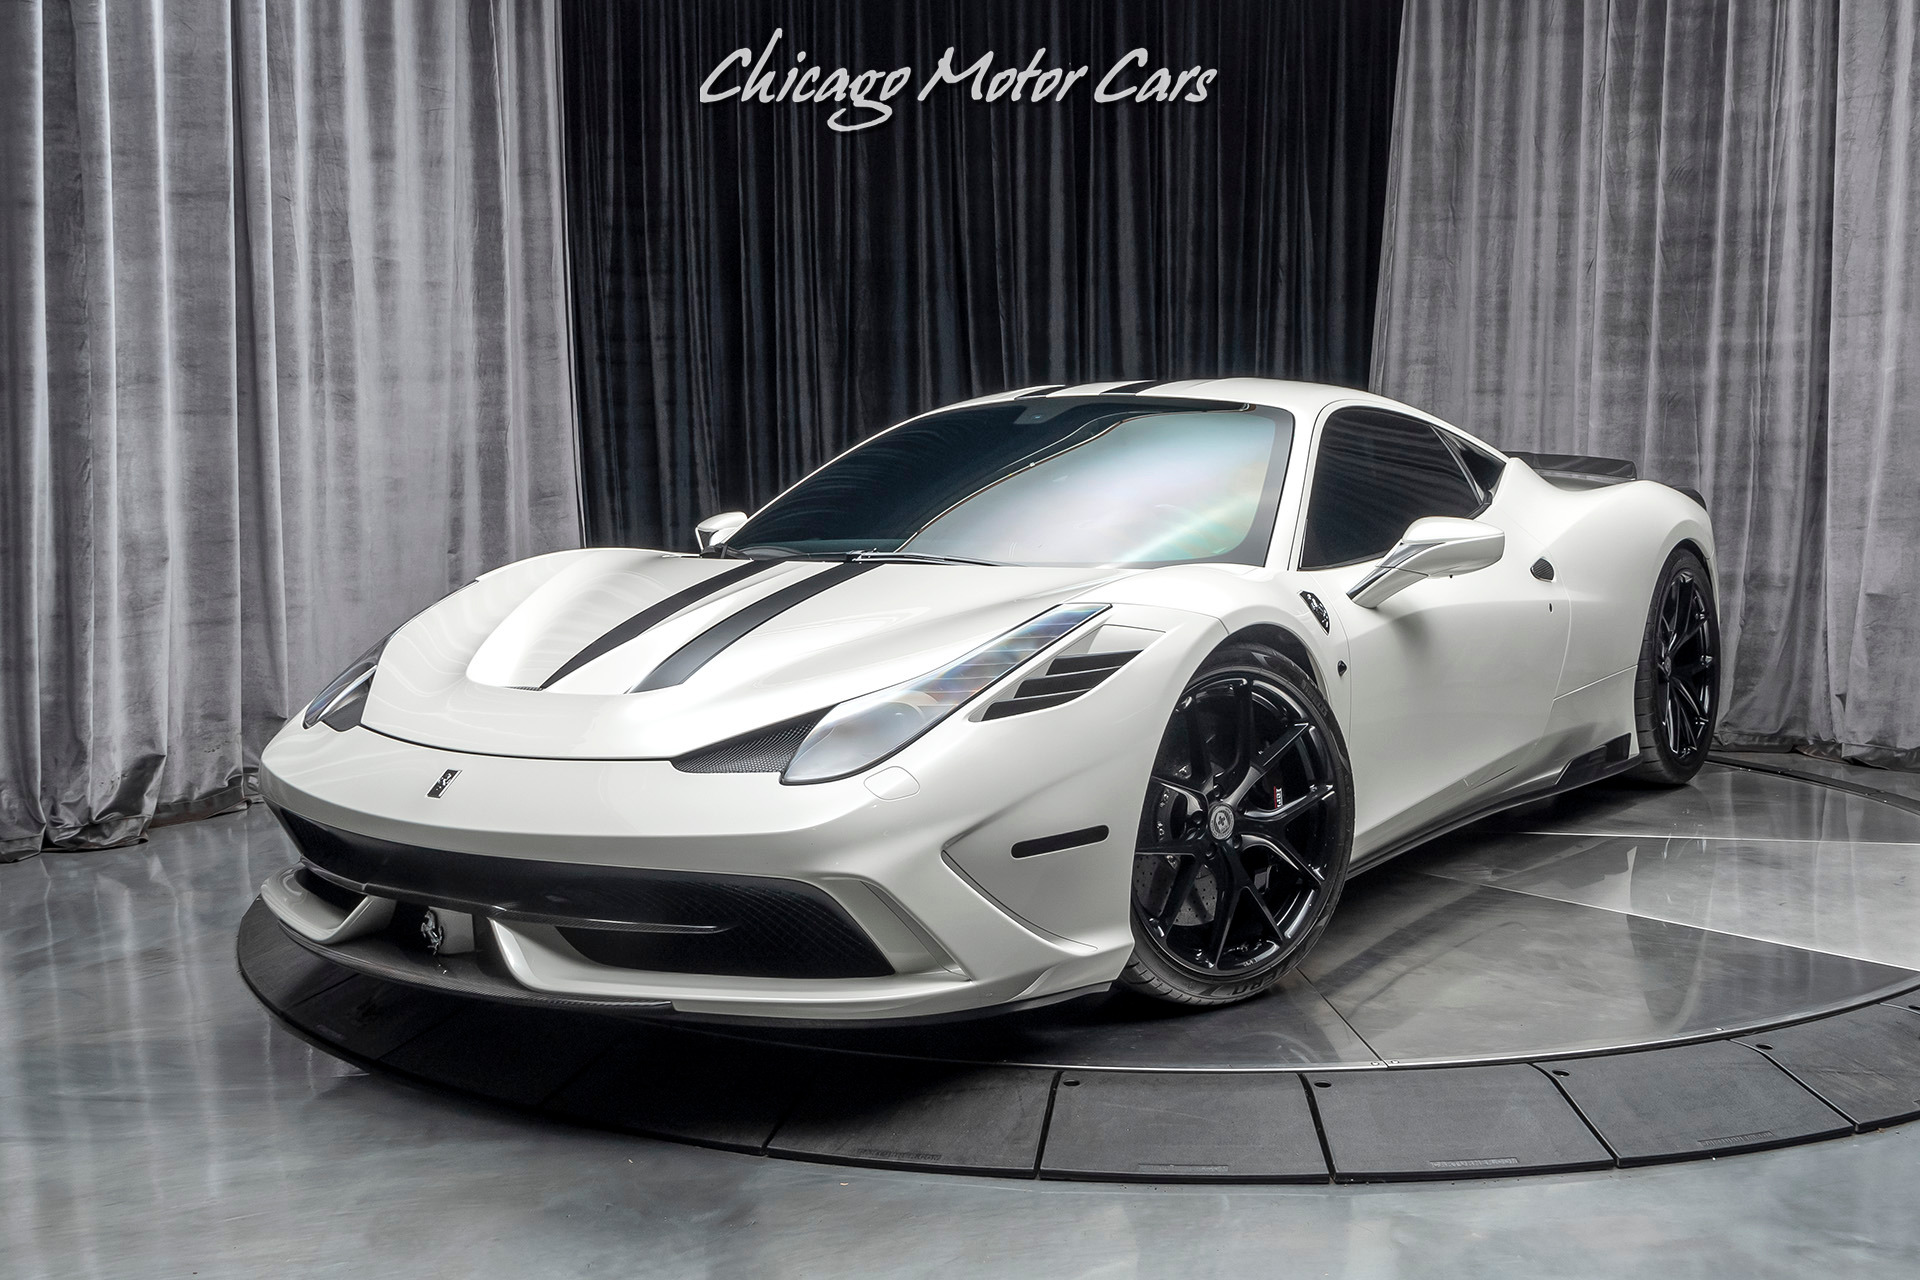 Used-2015-Ferrari-458-Speciale-Coupe---Novitec-Upgrades-Only-3k-Miles-Carbon-Fiber